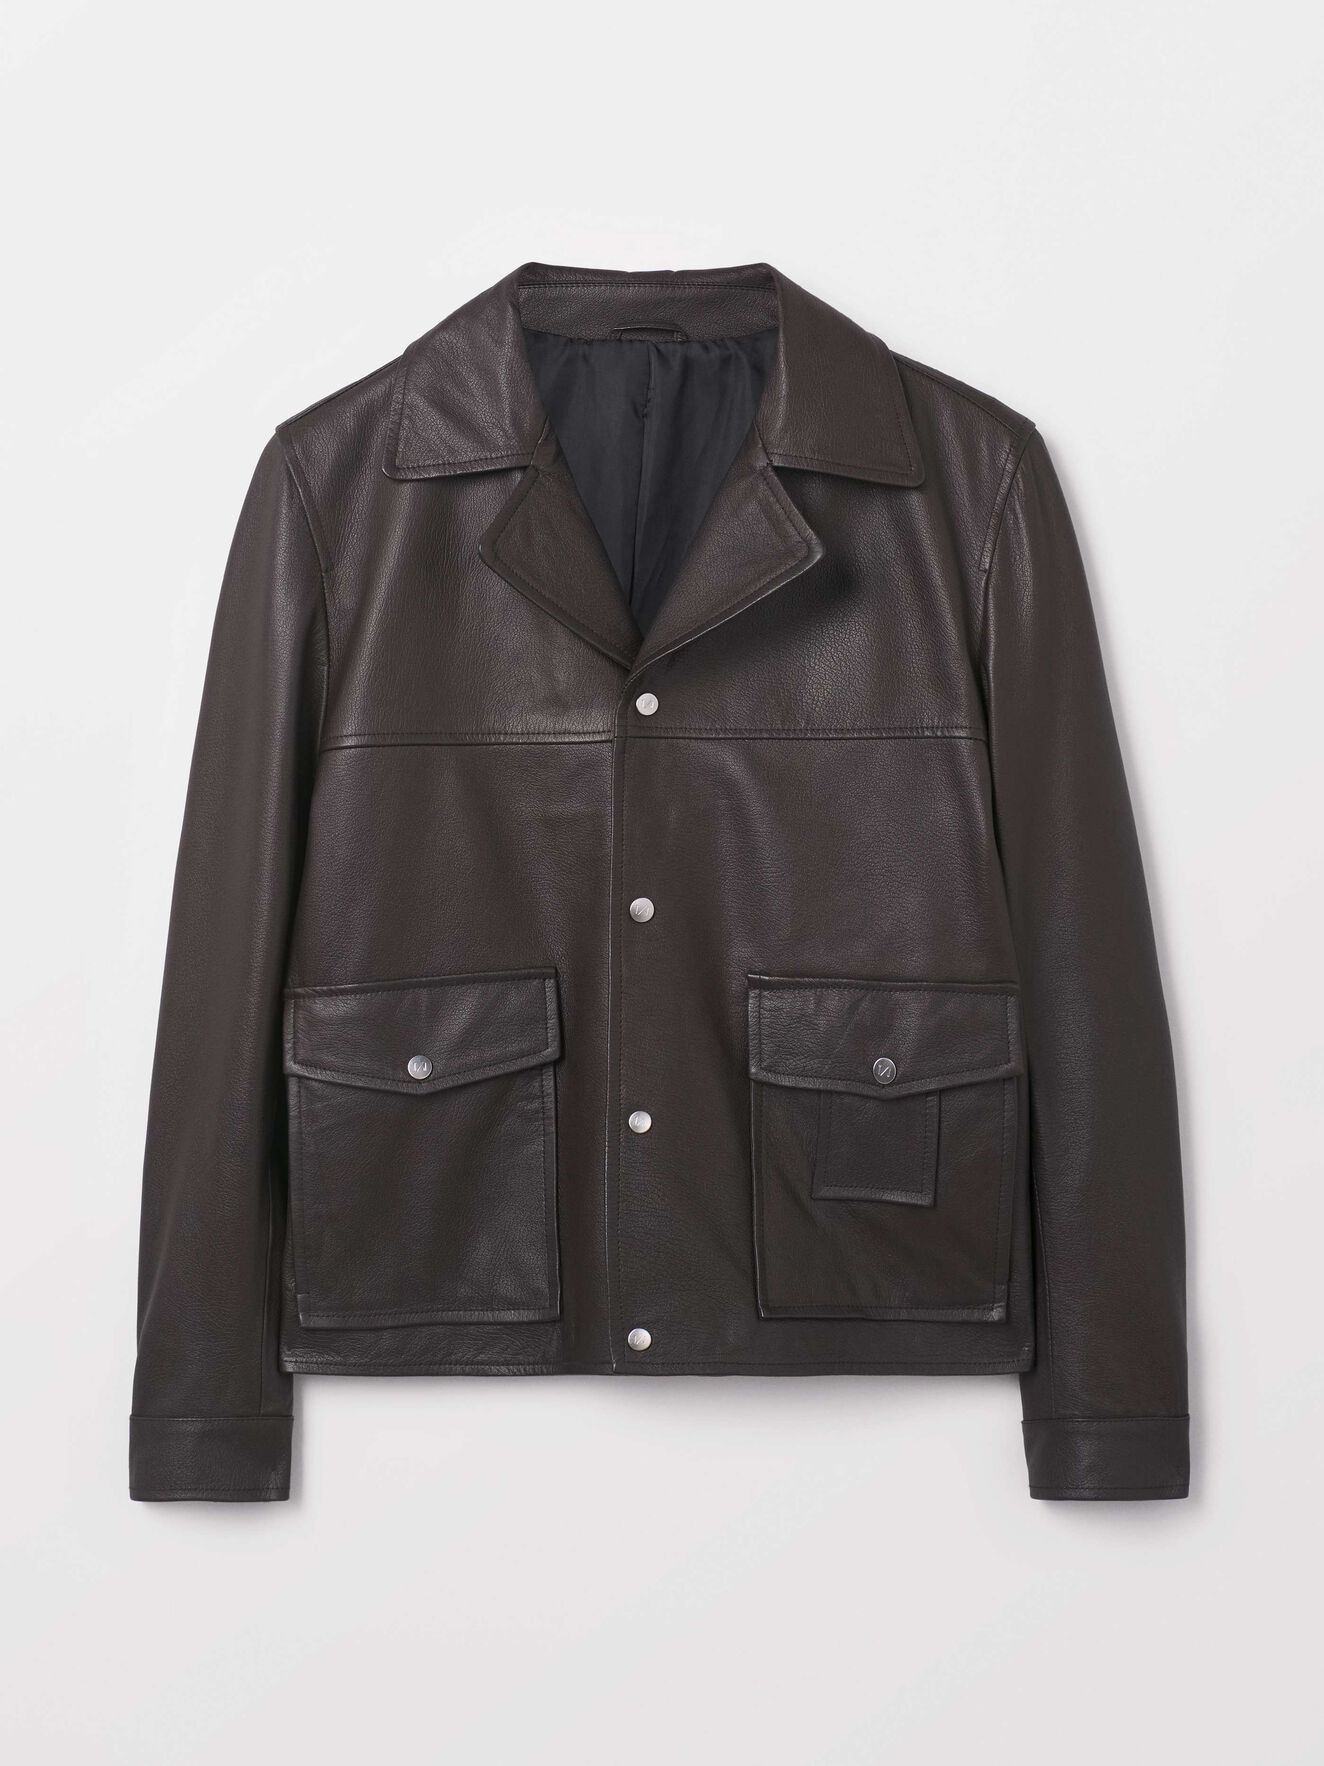 ... Duha Jacket in Chocolate Torte from Tiger of Sweden ...